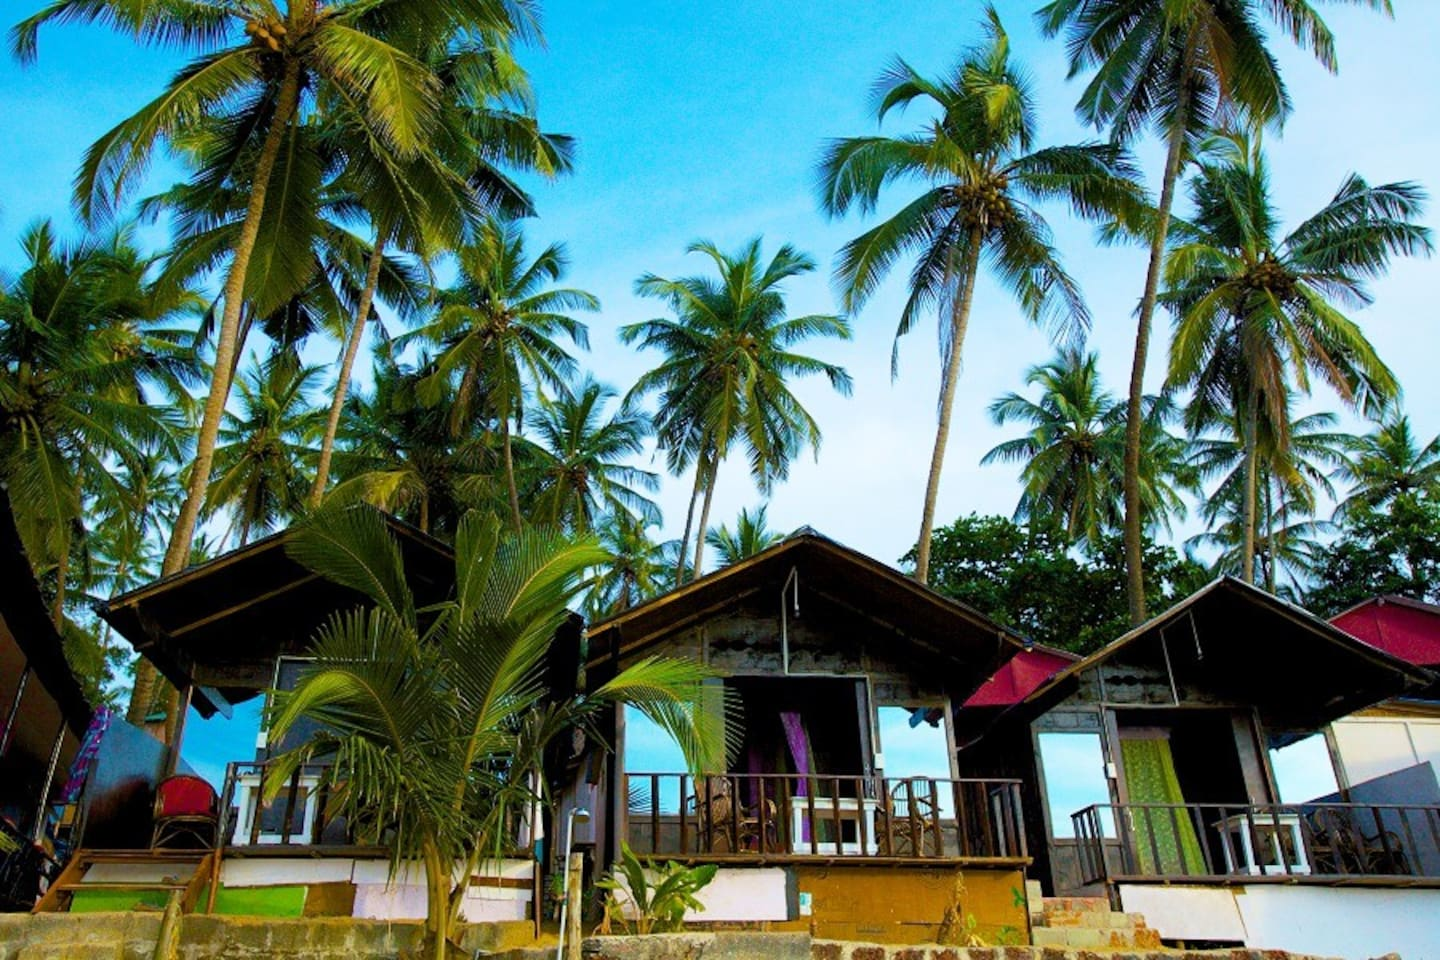 Green Park Resort Beachfront Hut Palolem Beach South Goa